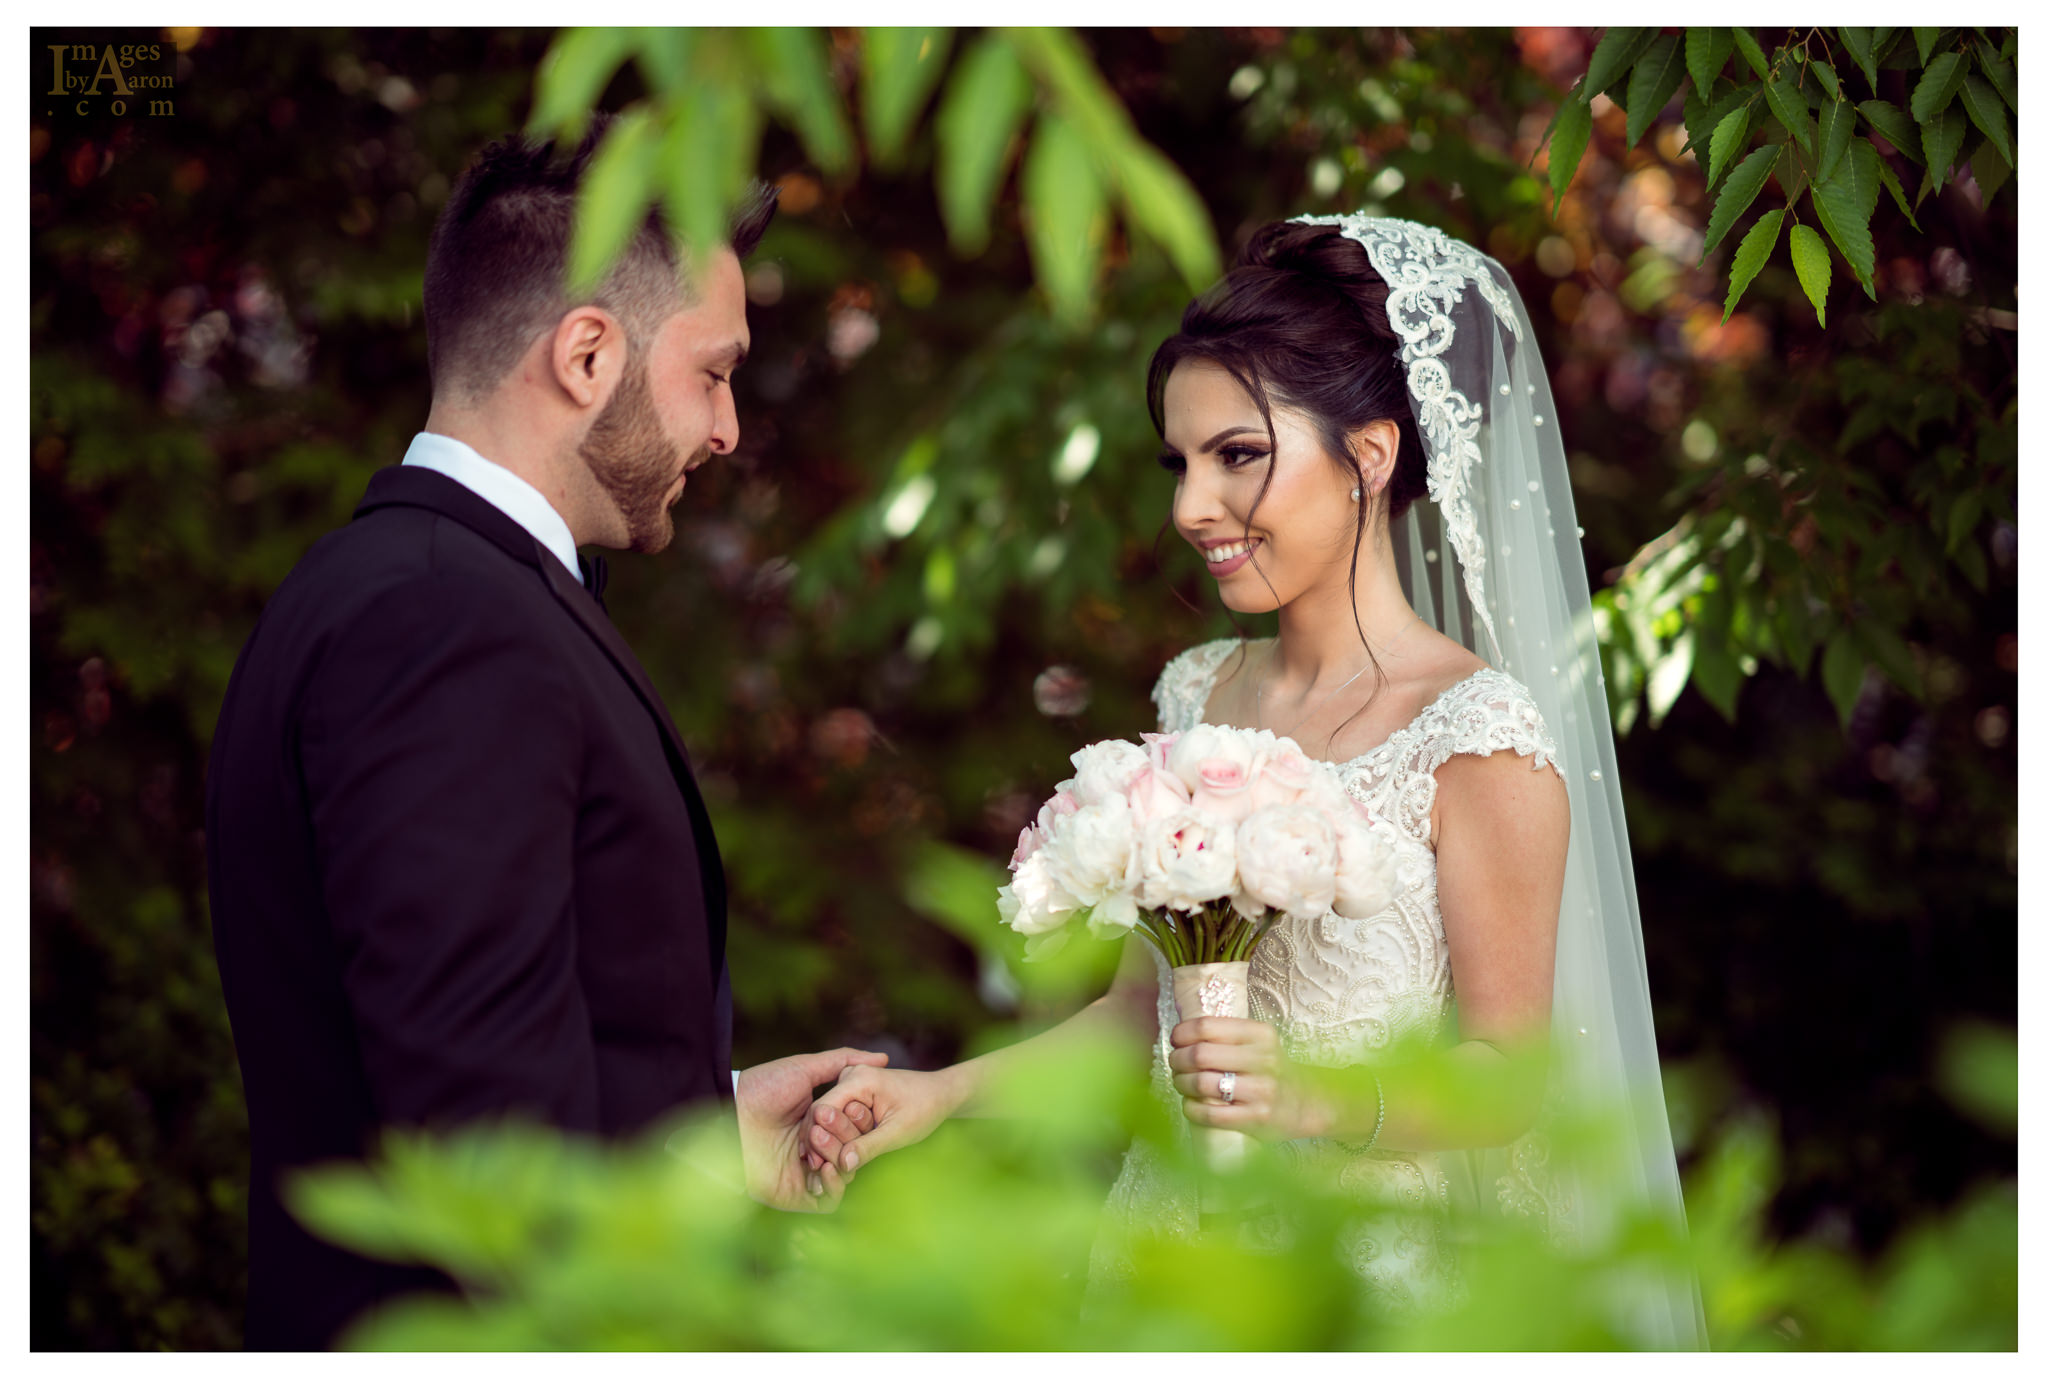 Gokce Turkish Wedding First Look New York Photographer Wedding Photography The Royal Manor-3.jpg